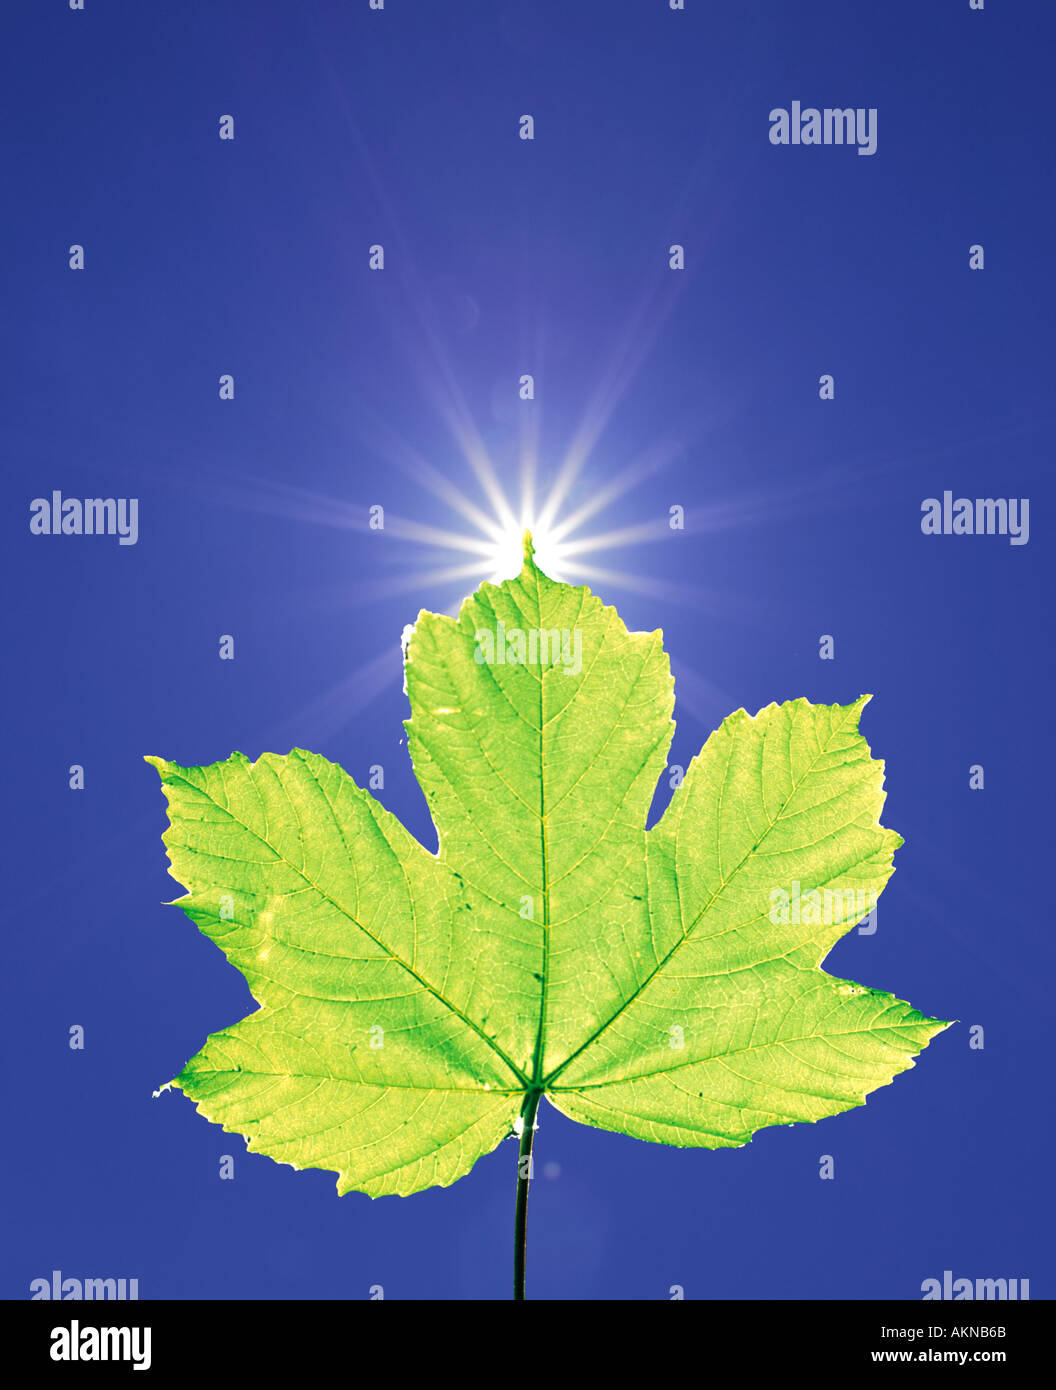 sun shining behind a maple leaf in extreme back lighting in blue sky Germany Europe - Stock Image